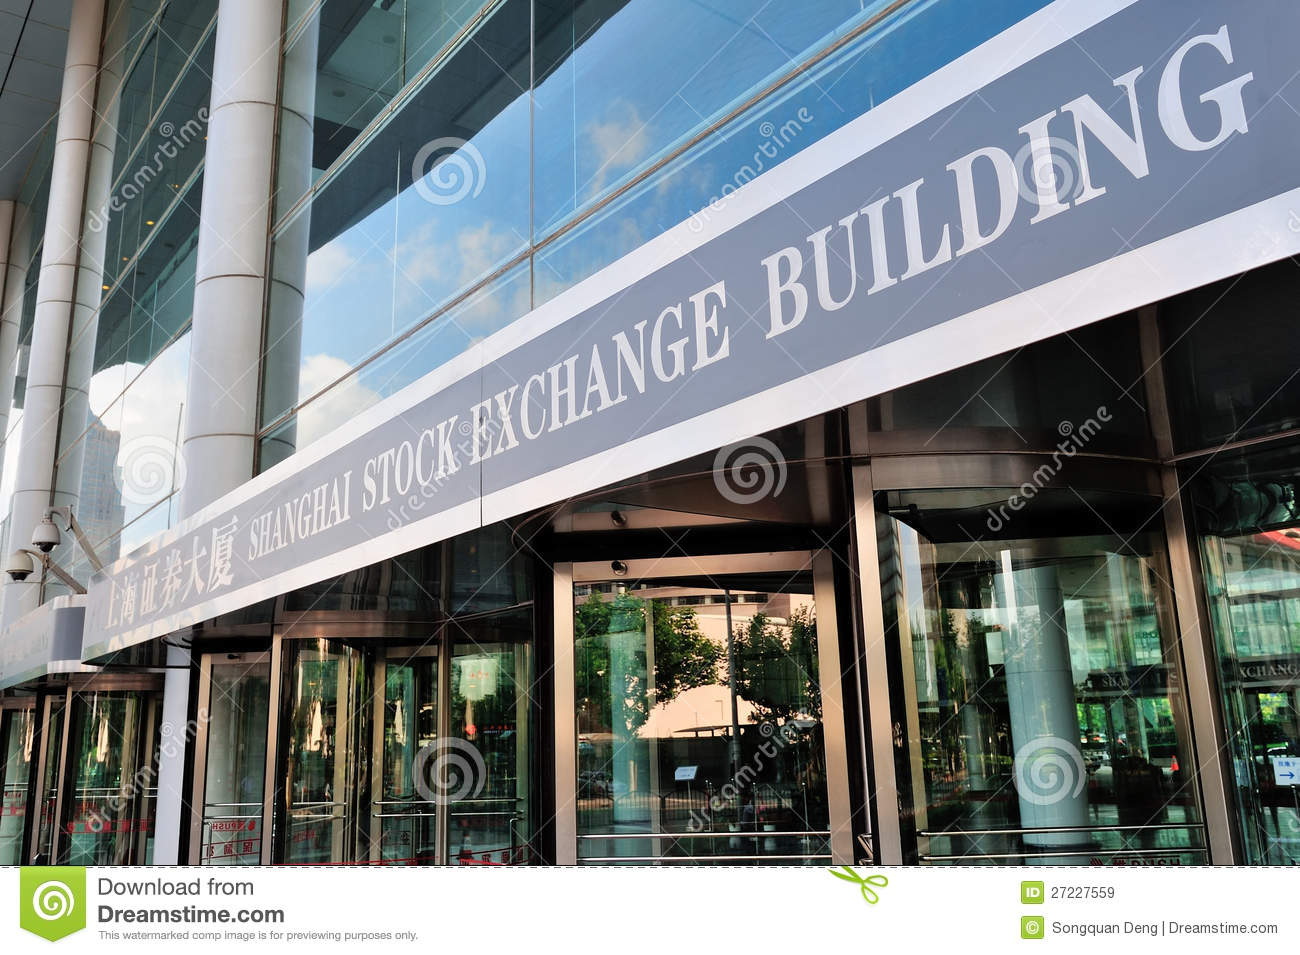 how to choose stock exchange